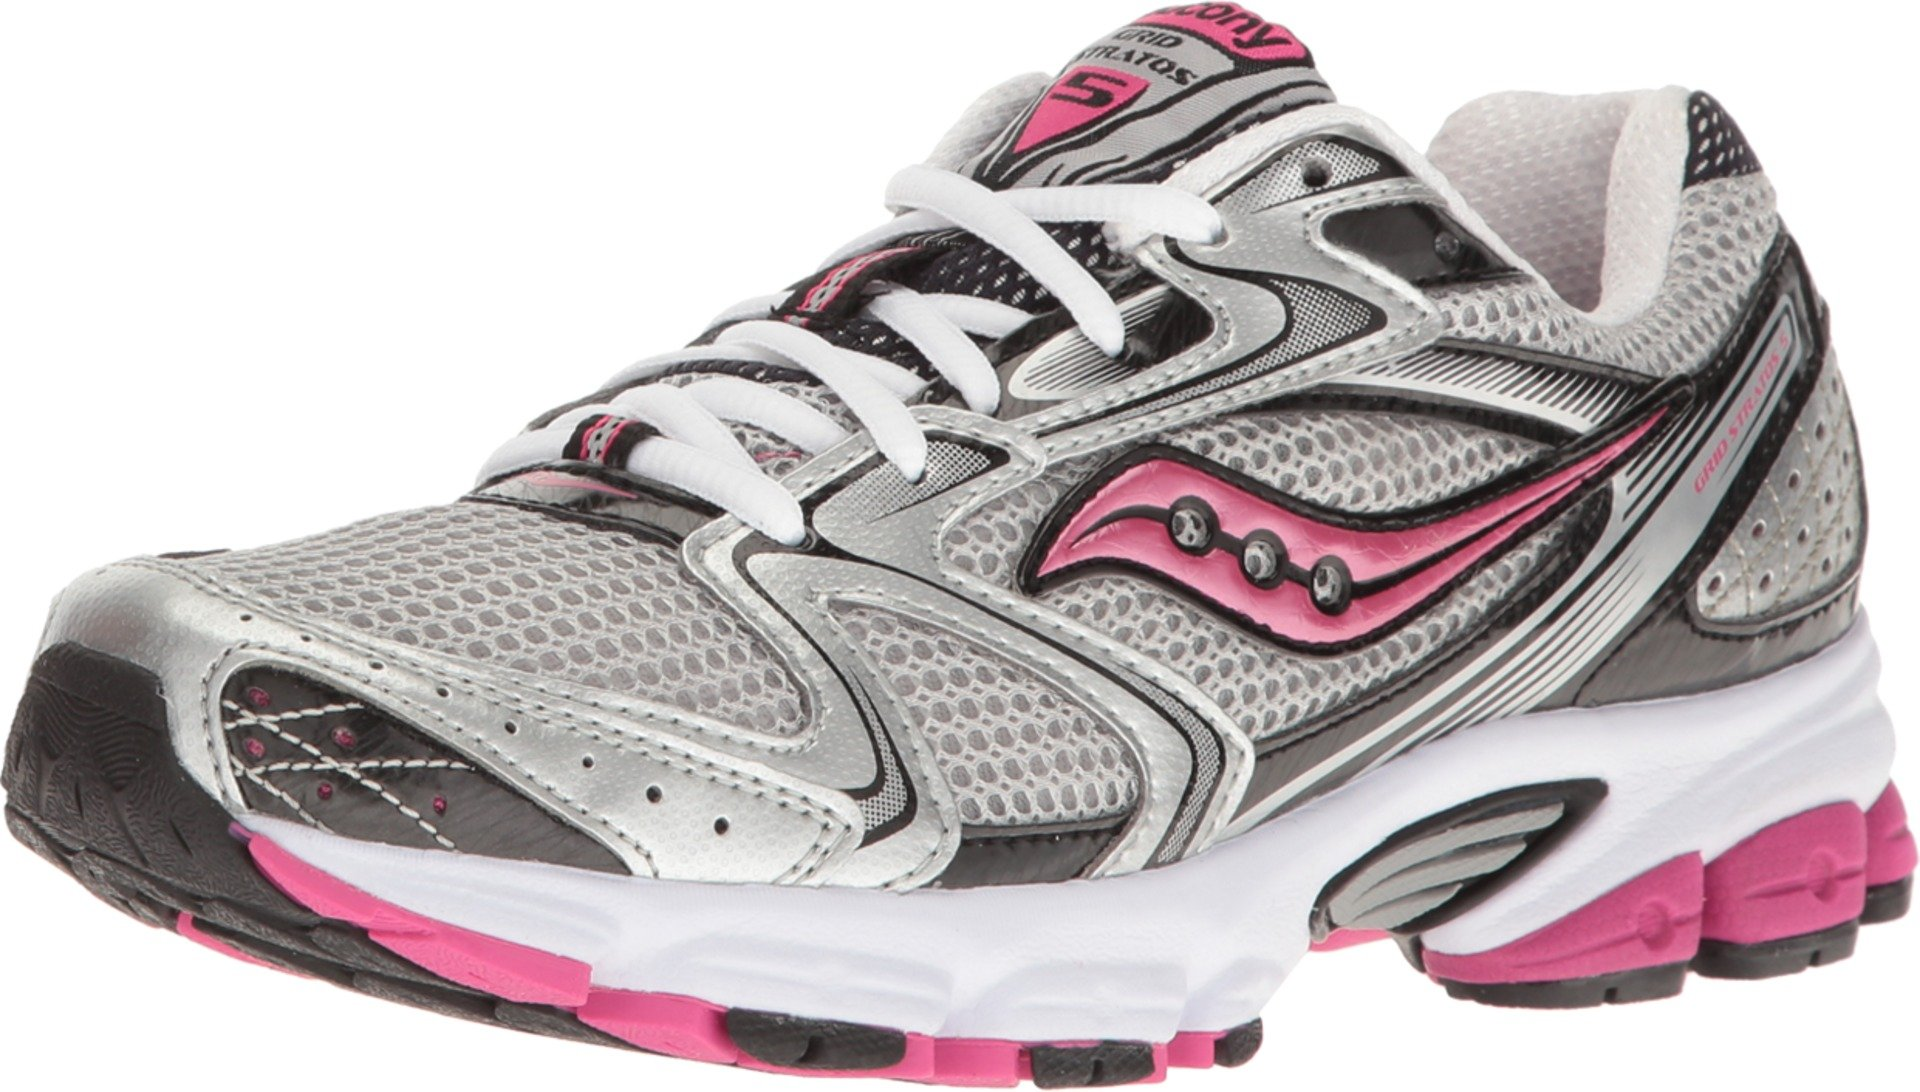 Saucony Women's Grid Stratos 5 Silver/Black/Pink 8.5 B US by Saucony